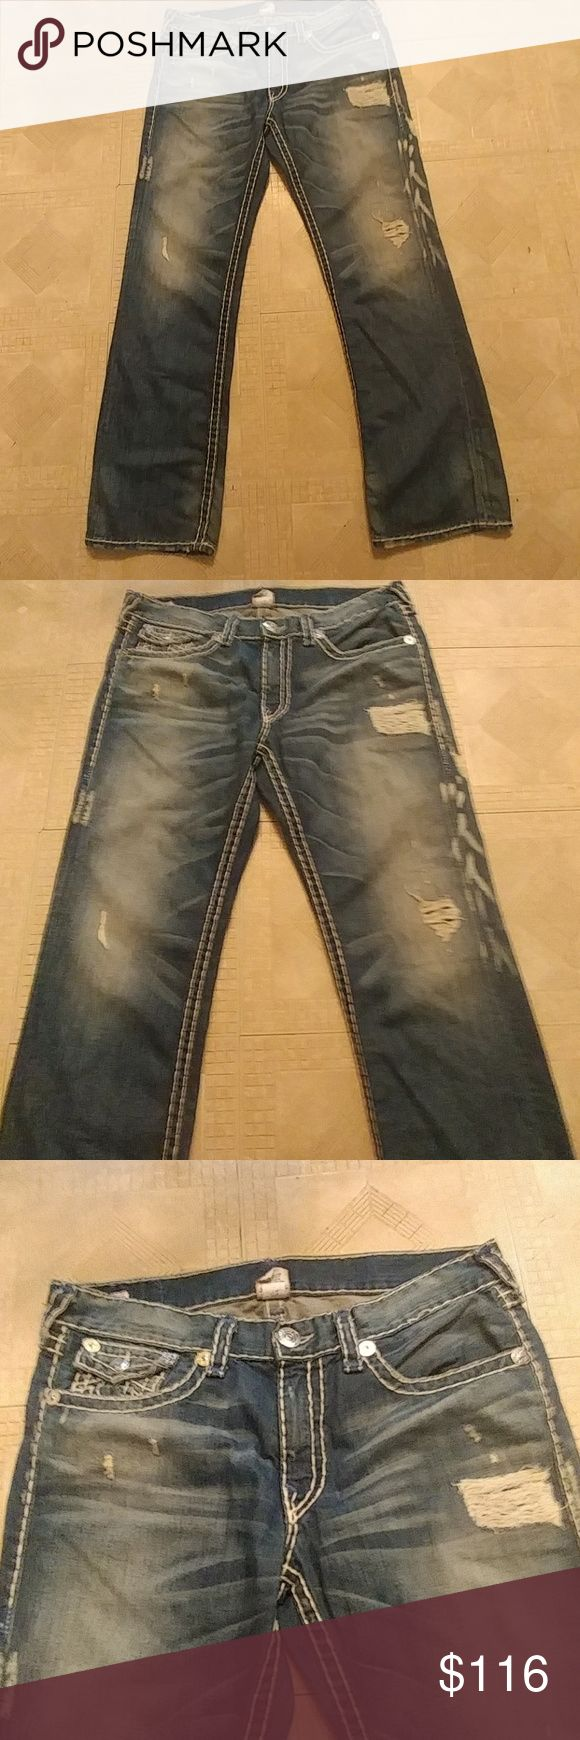 TRUE RELIGION MENS JEANS destored fashion Jeans are so nice worn one time size 36 color blue with white detrored look. True Religion Jeans